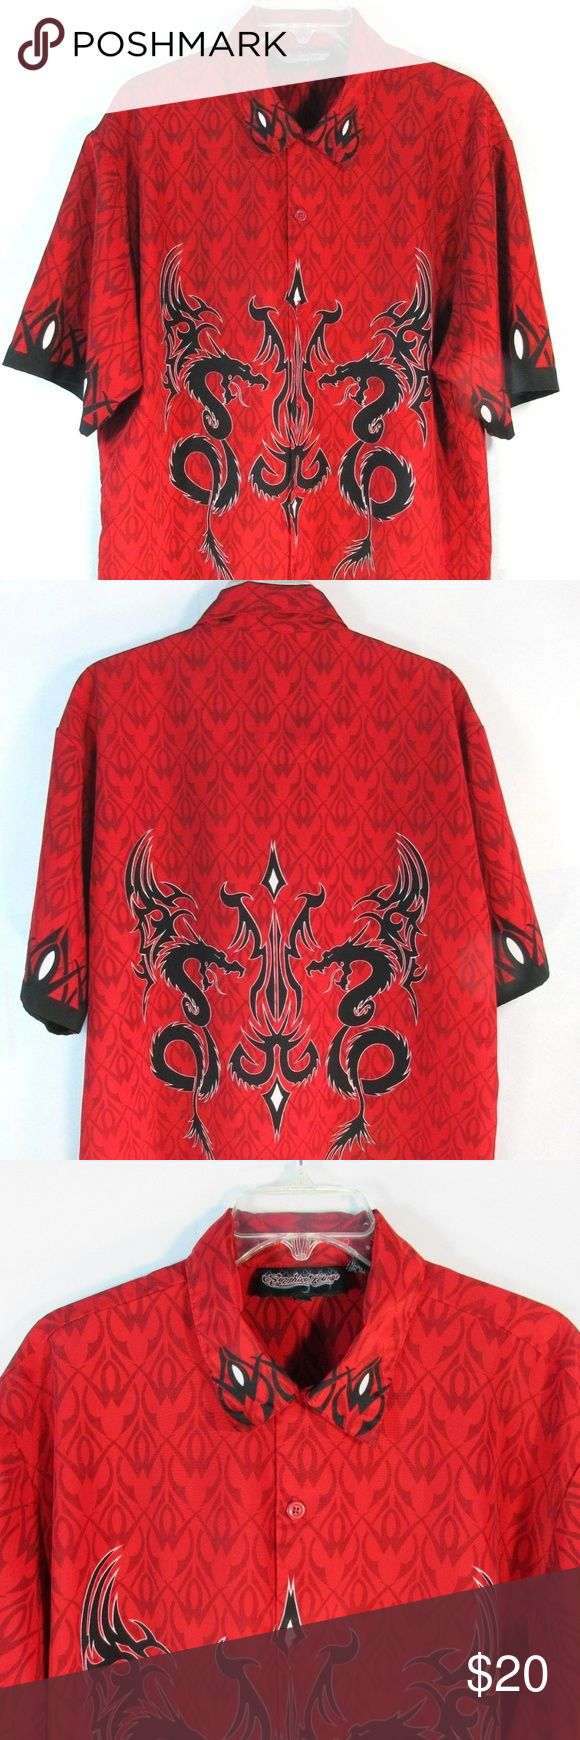 "Sapphire Lounge Men's TRIBAL Shirt Red L Sapphire Lounge Men's L TRIBAL Shirt Red Button Down Short Sleeve. In good used condition. No rips or stains. (C29)  Measurements: Armpit to Armpit: 24"" Sleeve: 21"" Length: 30"" Sapphire Lounge Shirts Casual Button Down Shirts"